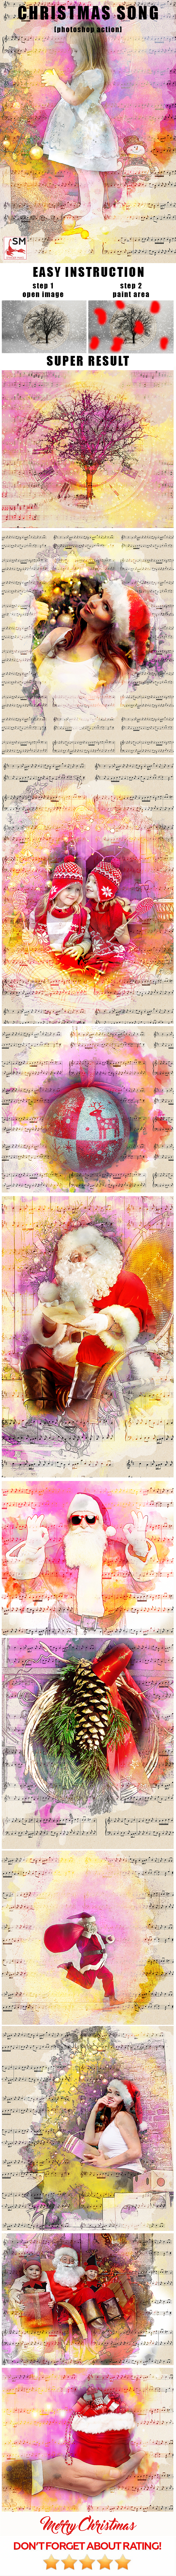 Christmas Song Photoshop Action - Photo Effects Actions